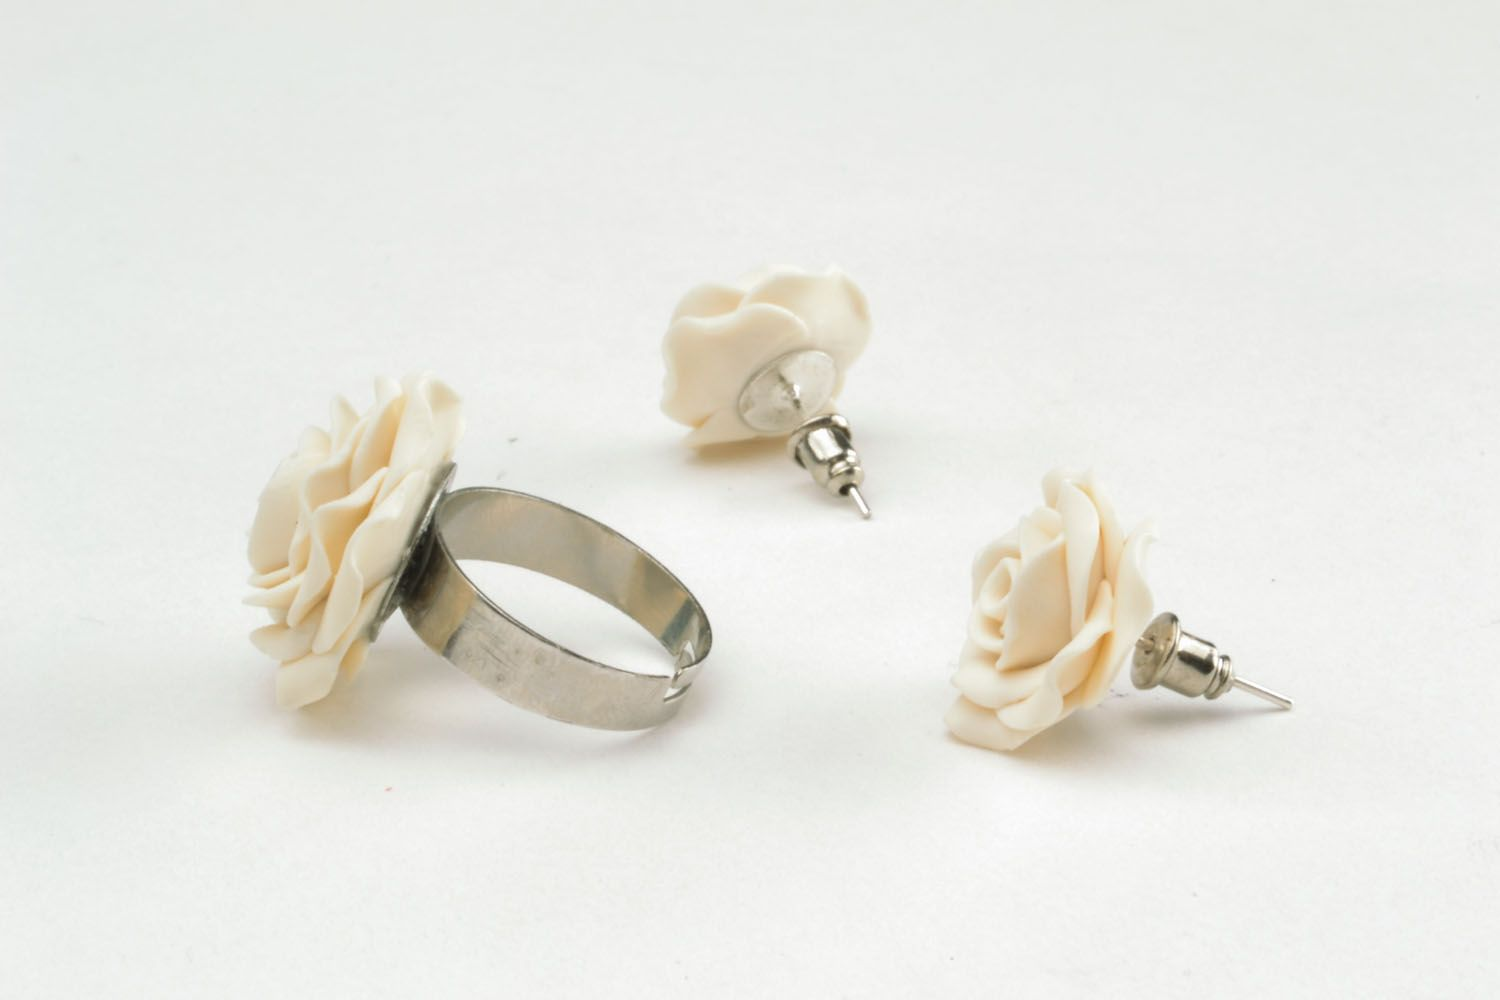 Plastic ring and earrings in the shape of white roses photo 4